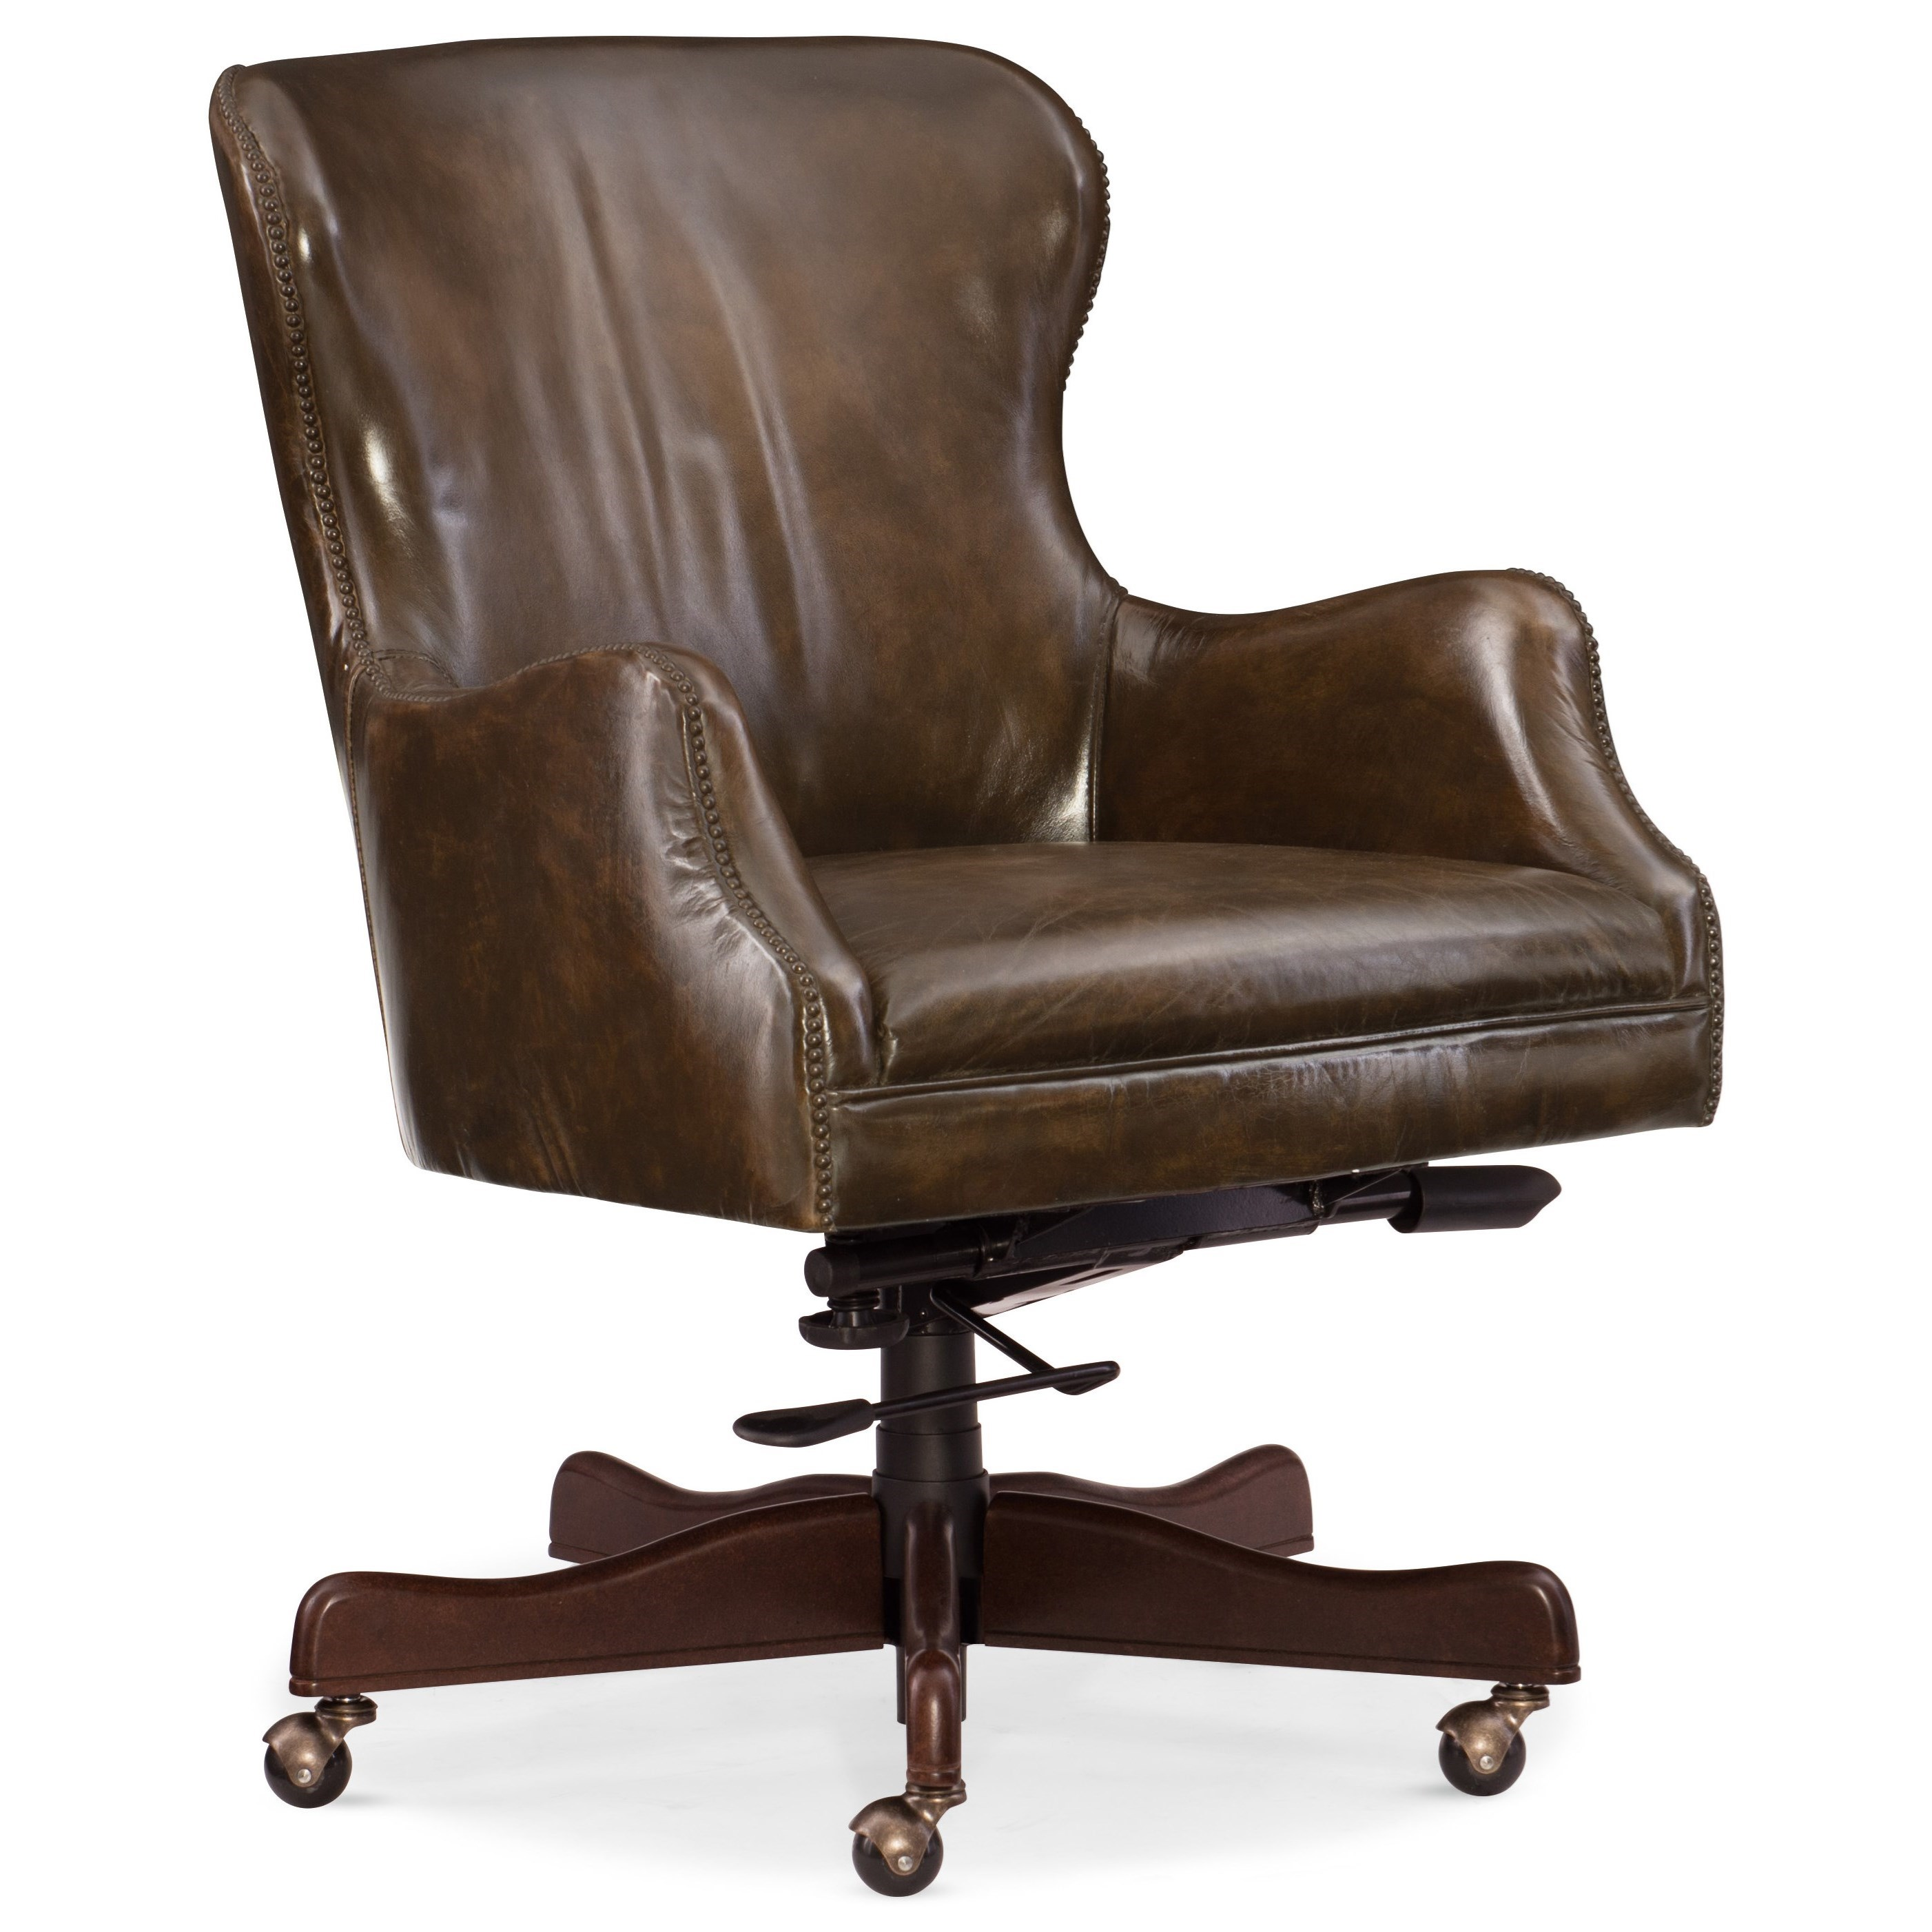 Hooker Furniture Executive Seating Caleb Home Office Chair - Item Number: EC489-084